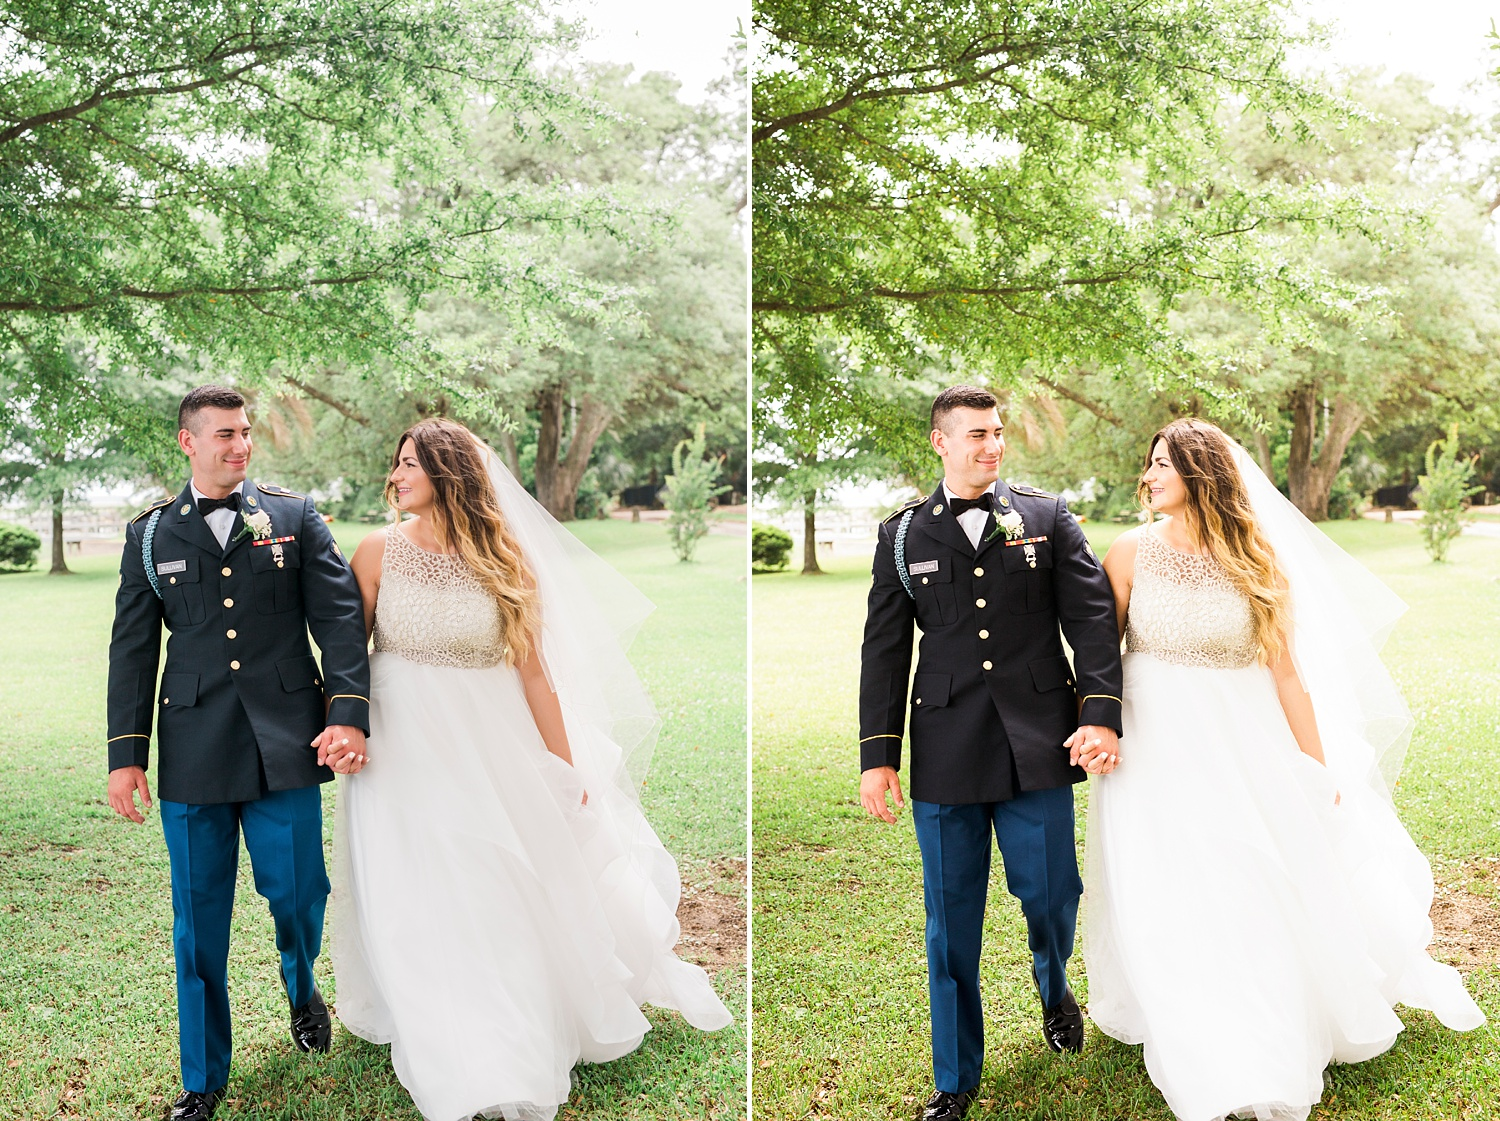 photographic editing comparison between 2 wedding portrait photos